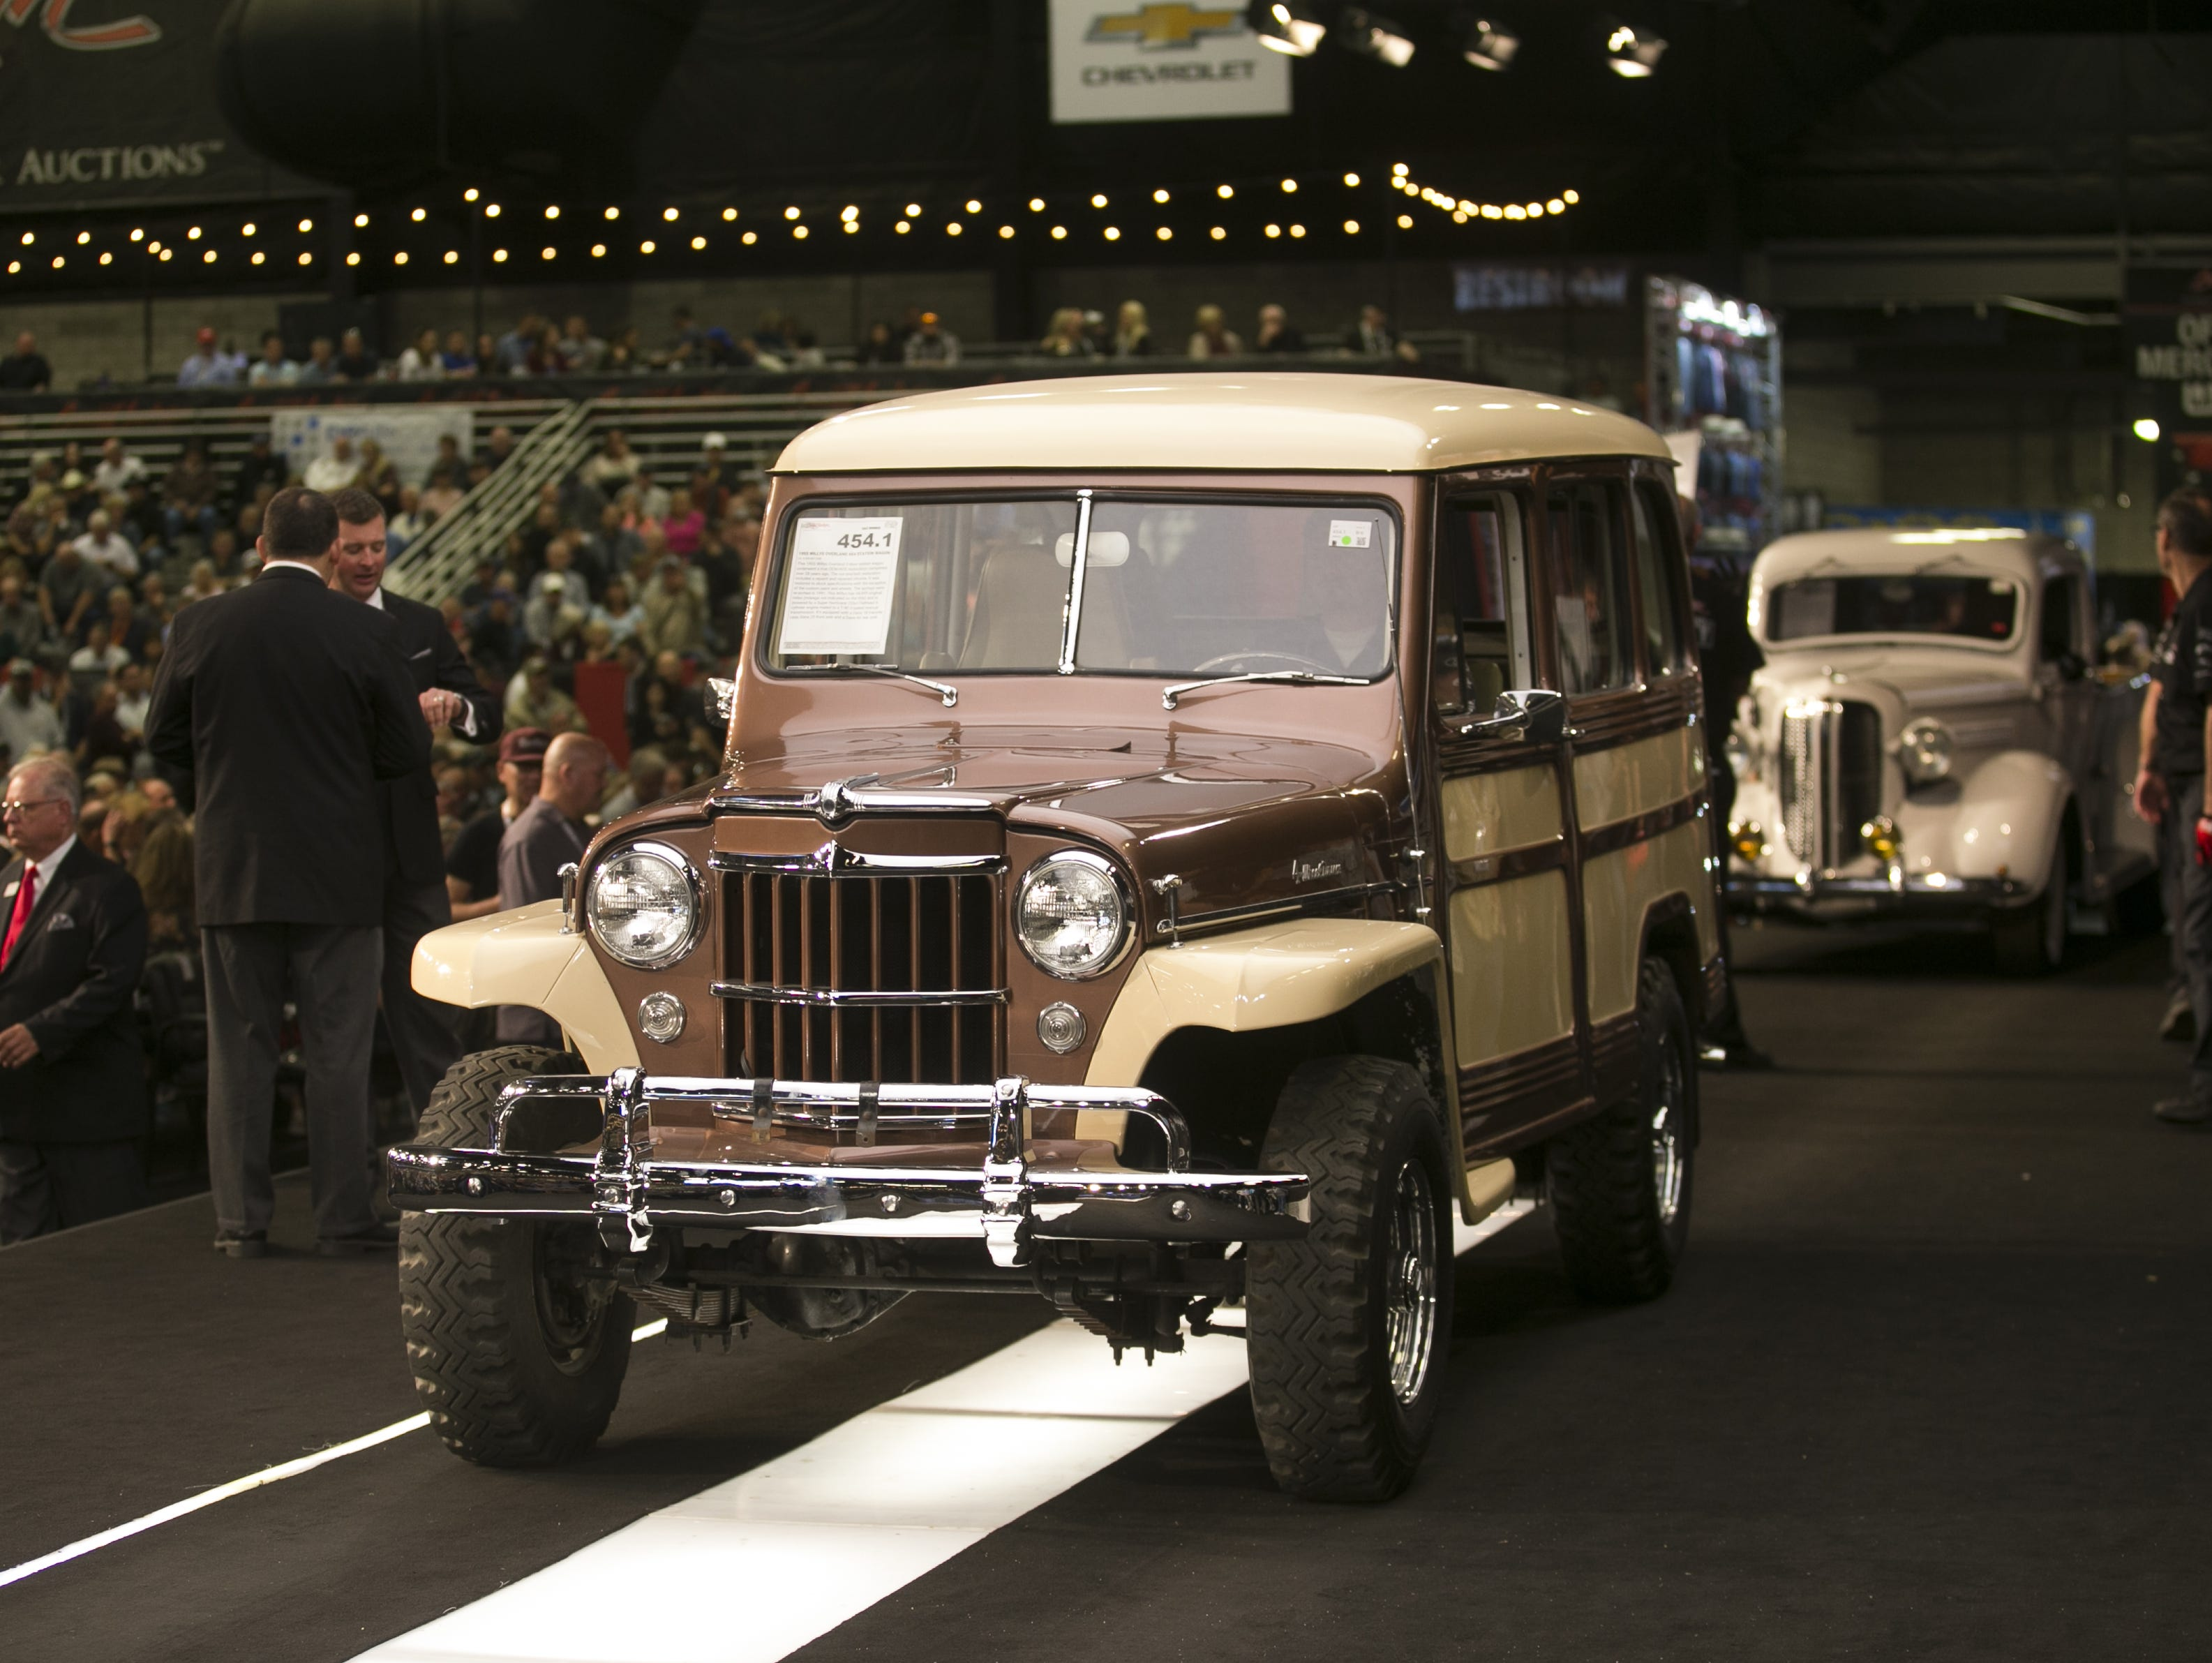 A 1955 Willy's Overland Station Wagon is auctioned at the Barrett-Jackson Car Auction at WestWorld in Scottsdale, Arizona, on Jan. 16, 2019.